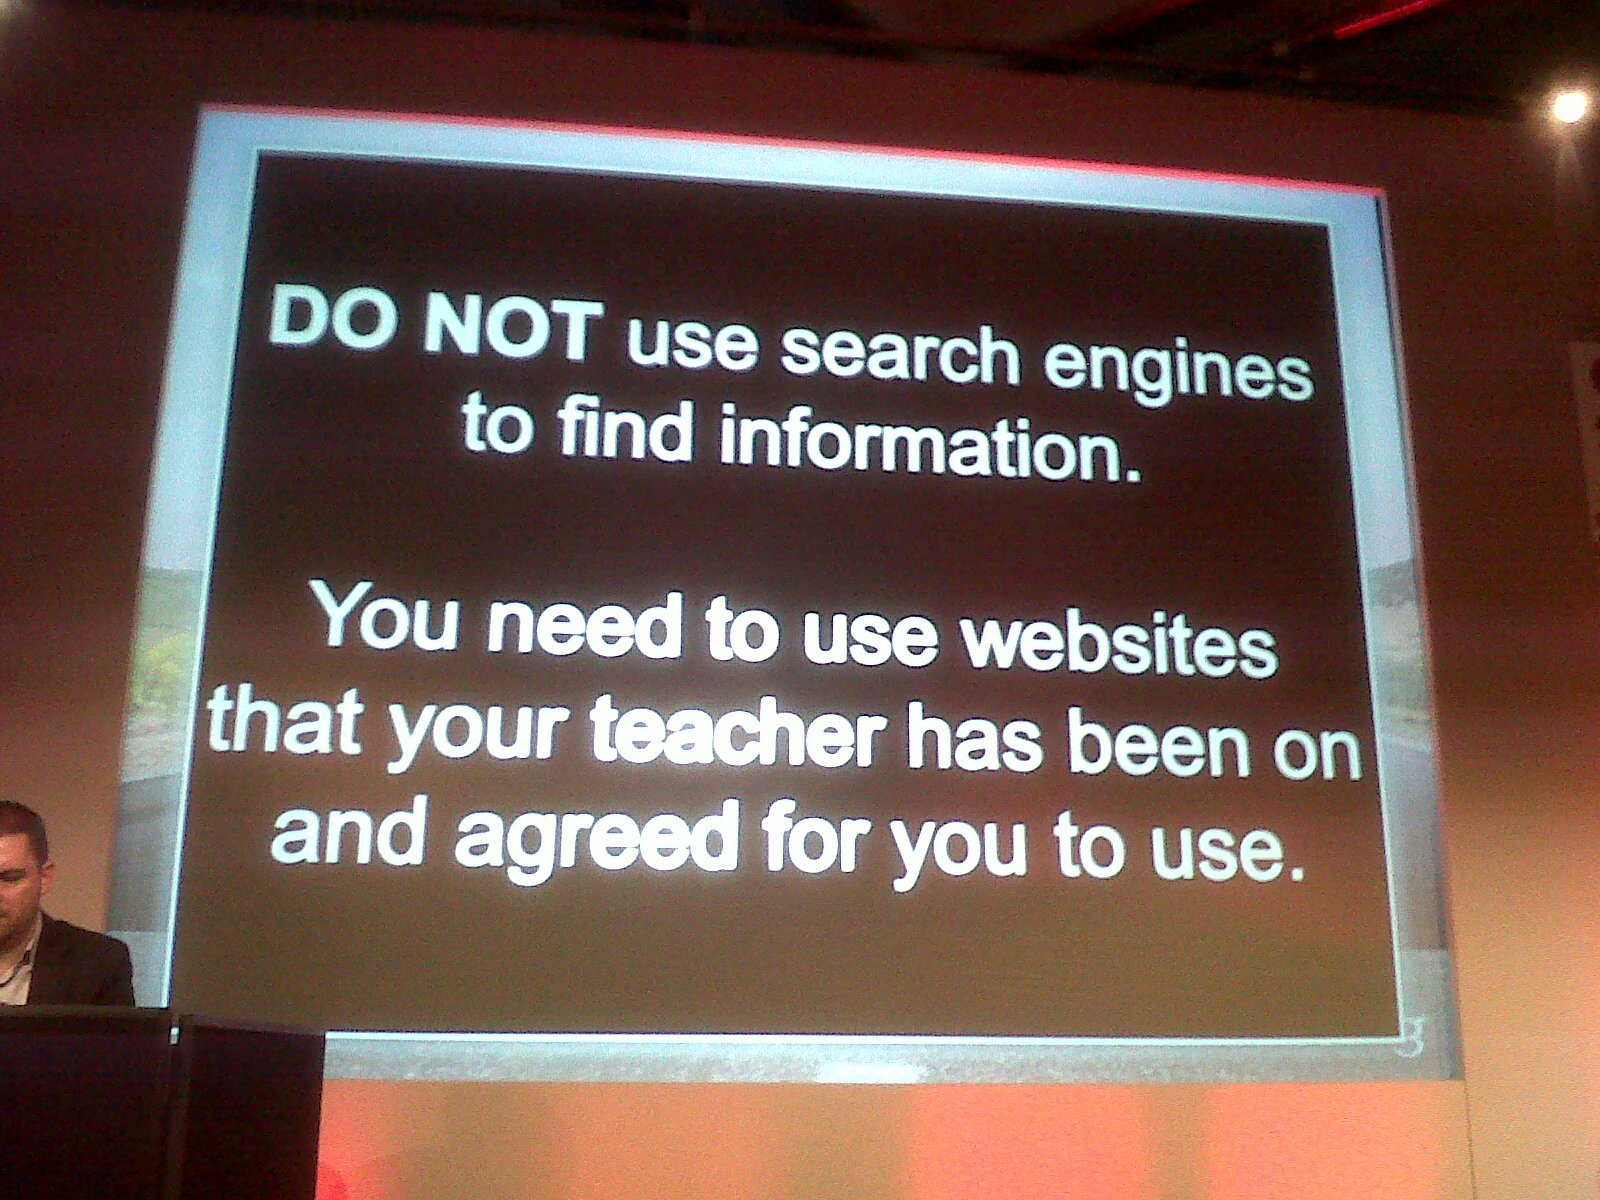 Don't use search engines!